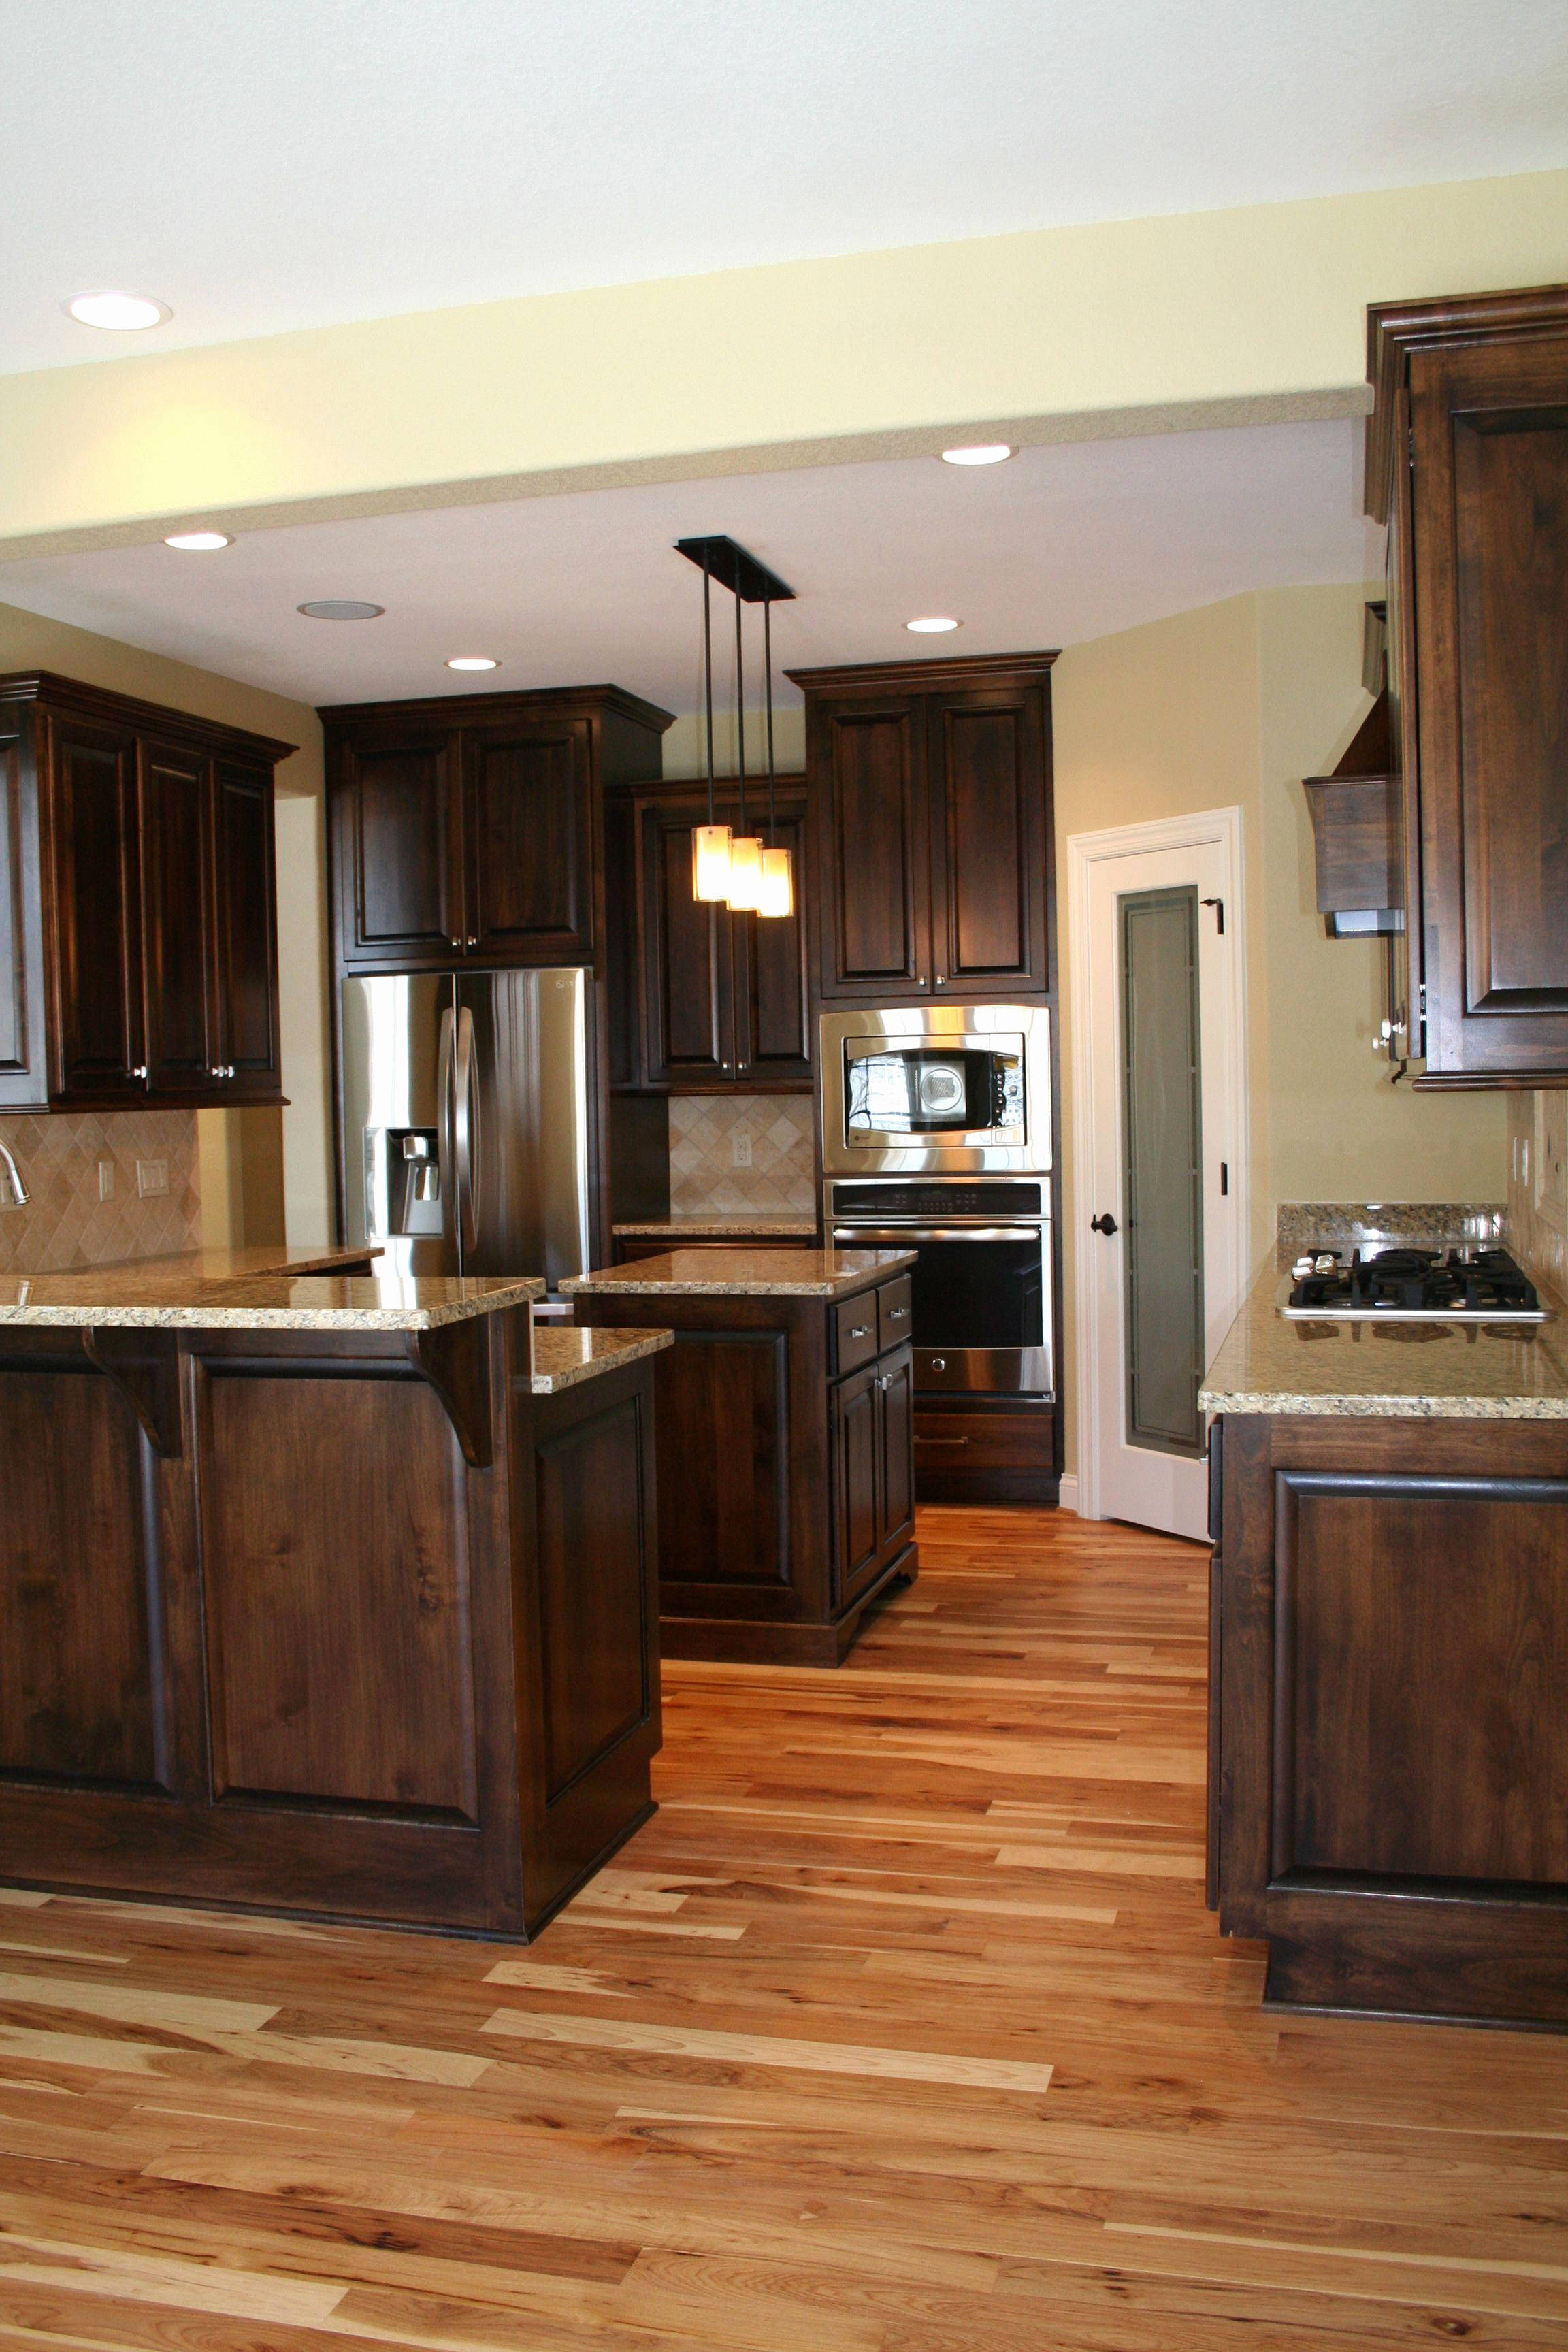 hardwood flooring kc of 36 elegant granite countertops kansas city coffee table and within granite countertops kansas city new hardwood floors in kitchen row home kitchen renovation sink in